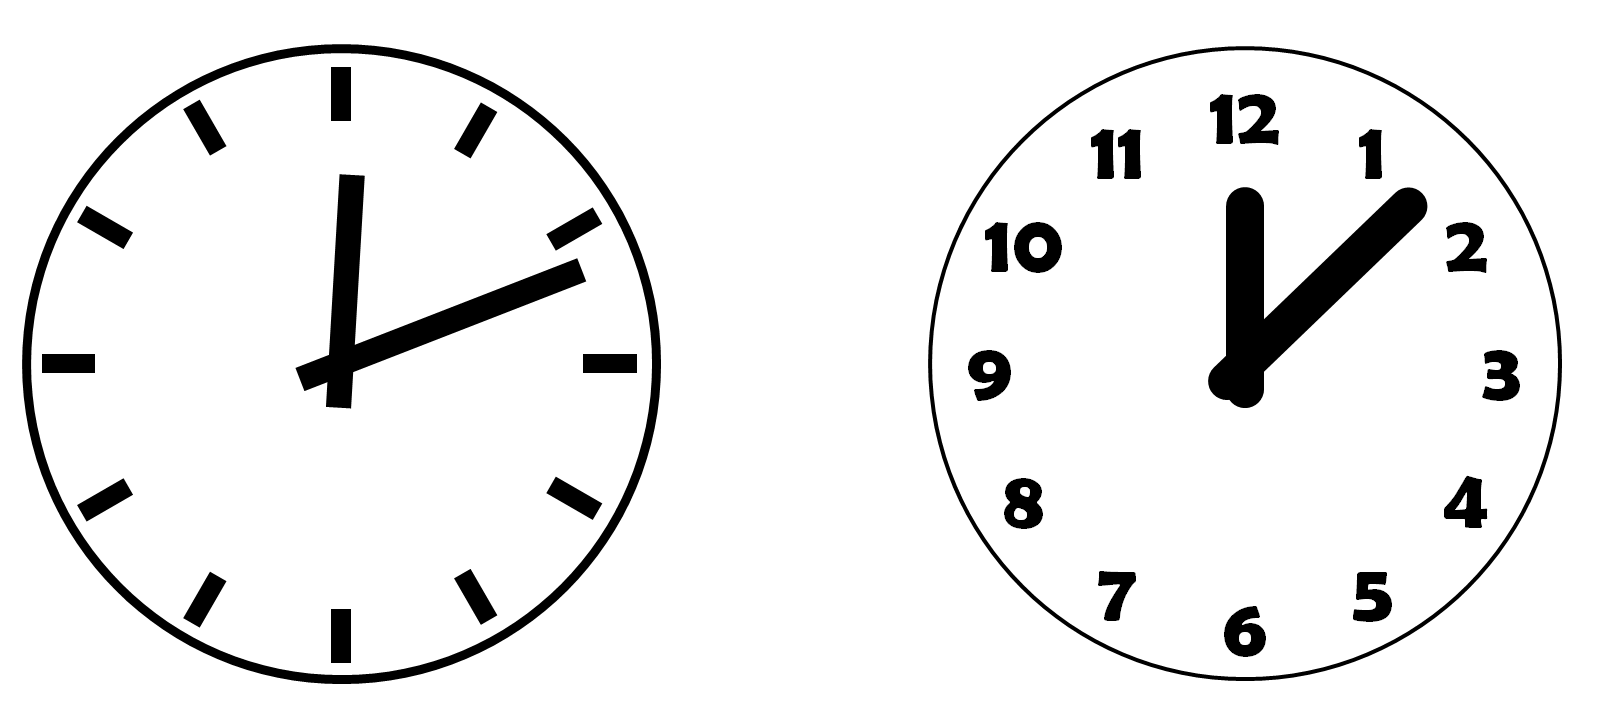 Drawing clocks. In powerpoint clock icons